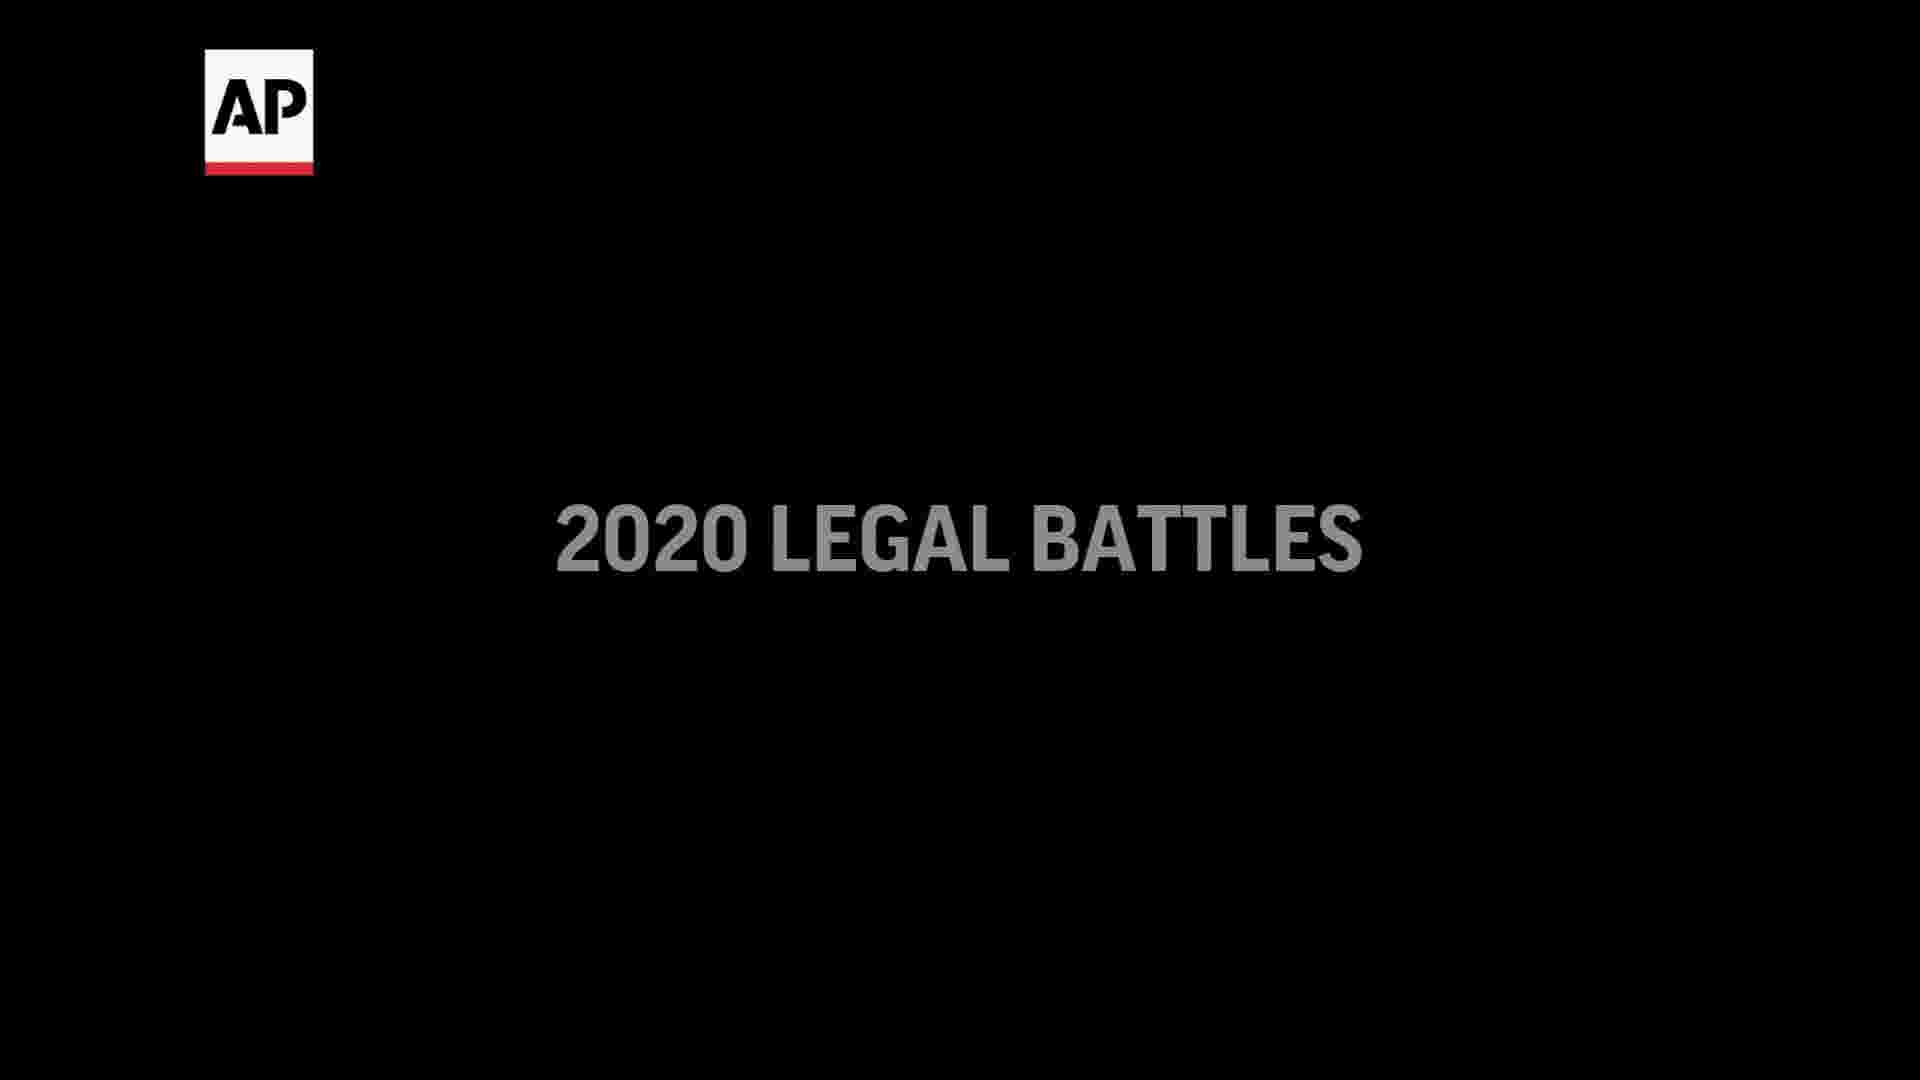 2020 correct battles: Depp, Spears, Loughlin